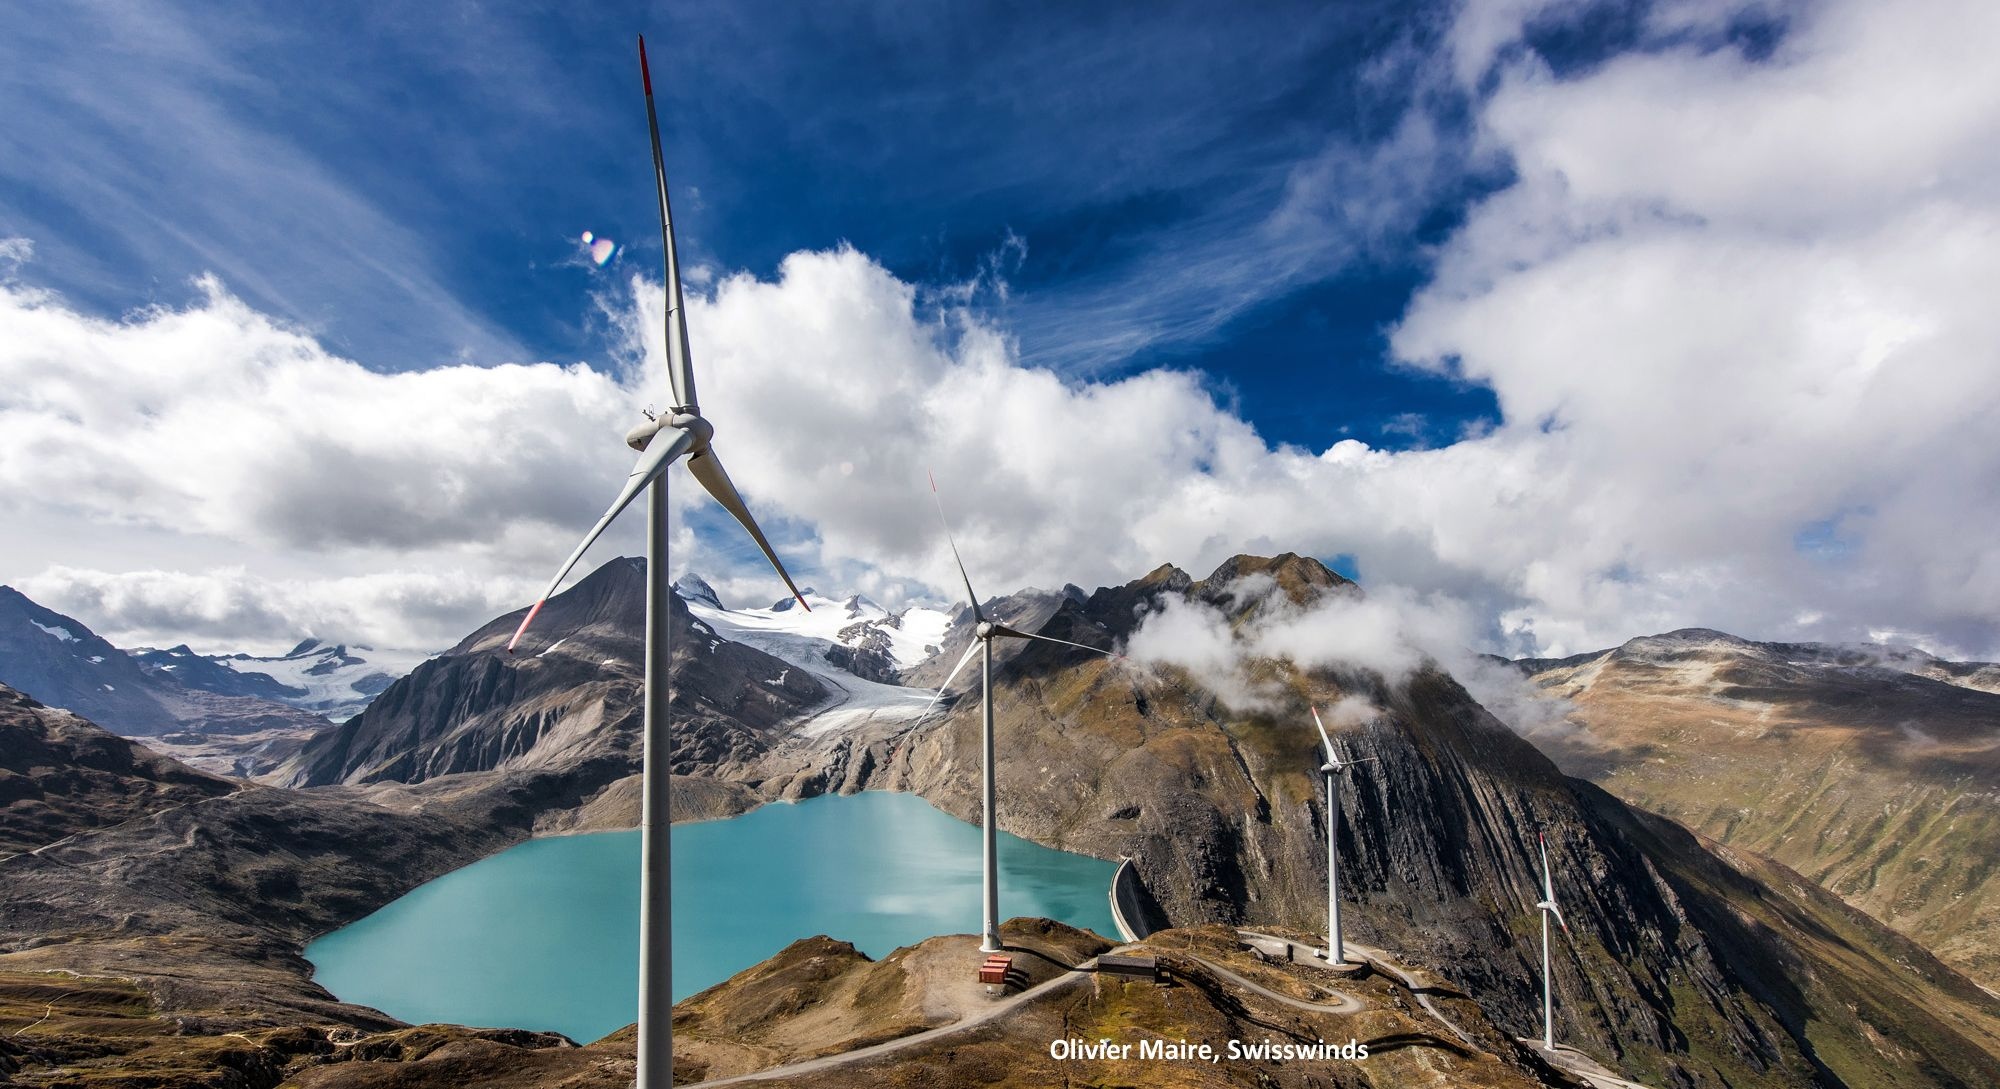 Bilan énergetique global | Image: Olivier Maire, Swisswinds